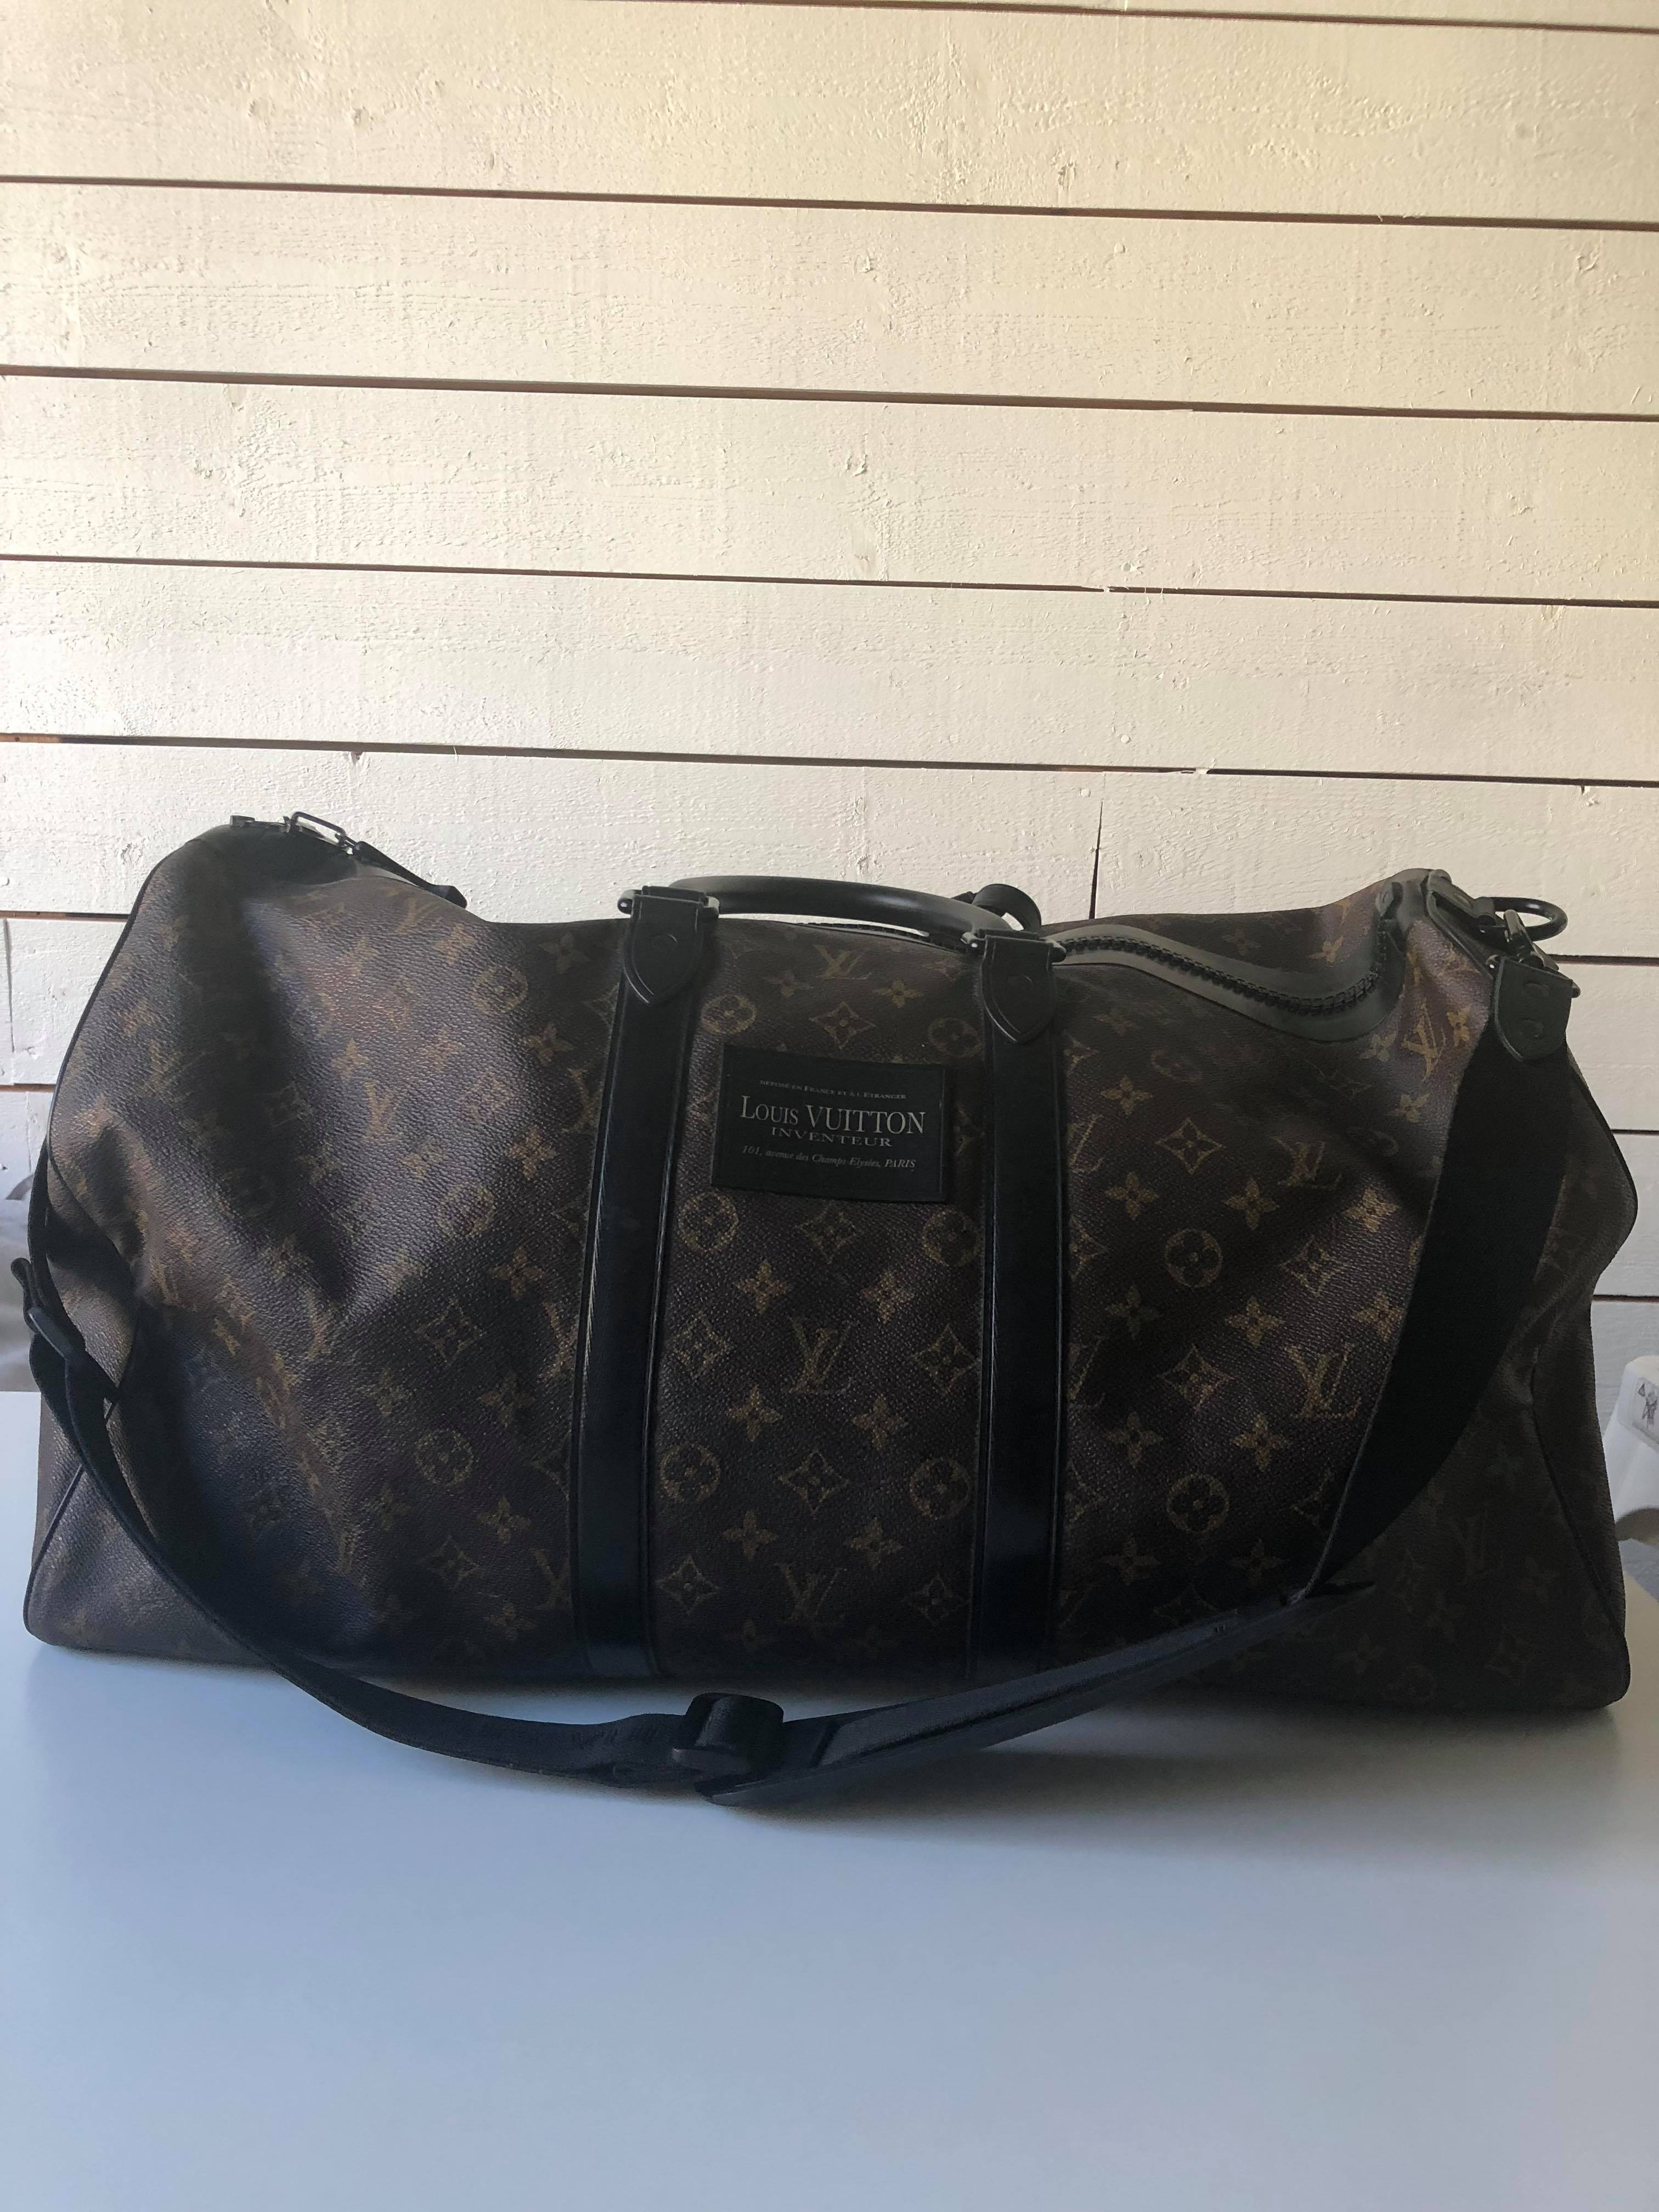 f36fc3ce05 Louis Vuitton Limited Edition Louis Vuitton Cup Waterproof Keepall 55  bandouliere Yacht Size one size - Bags & Luggage for Sale - Grailed